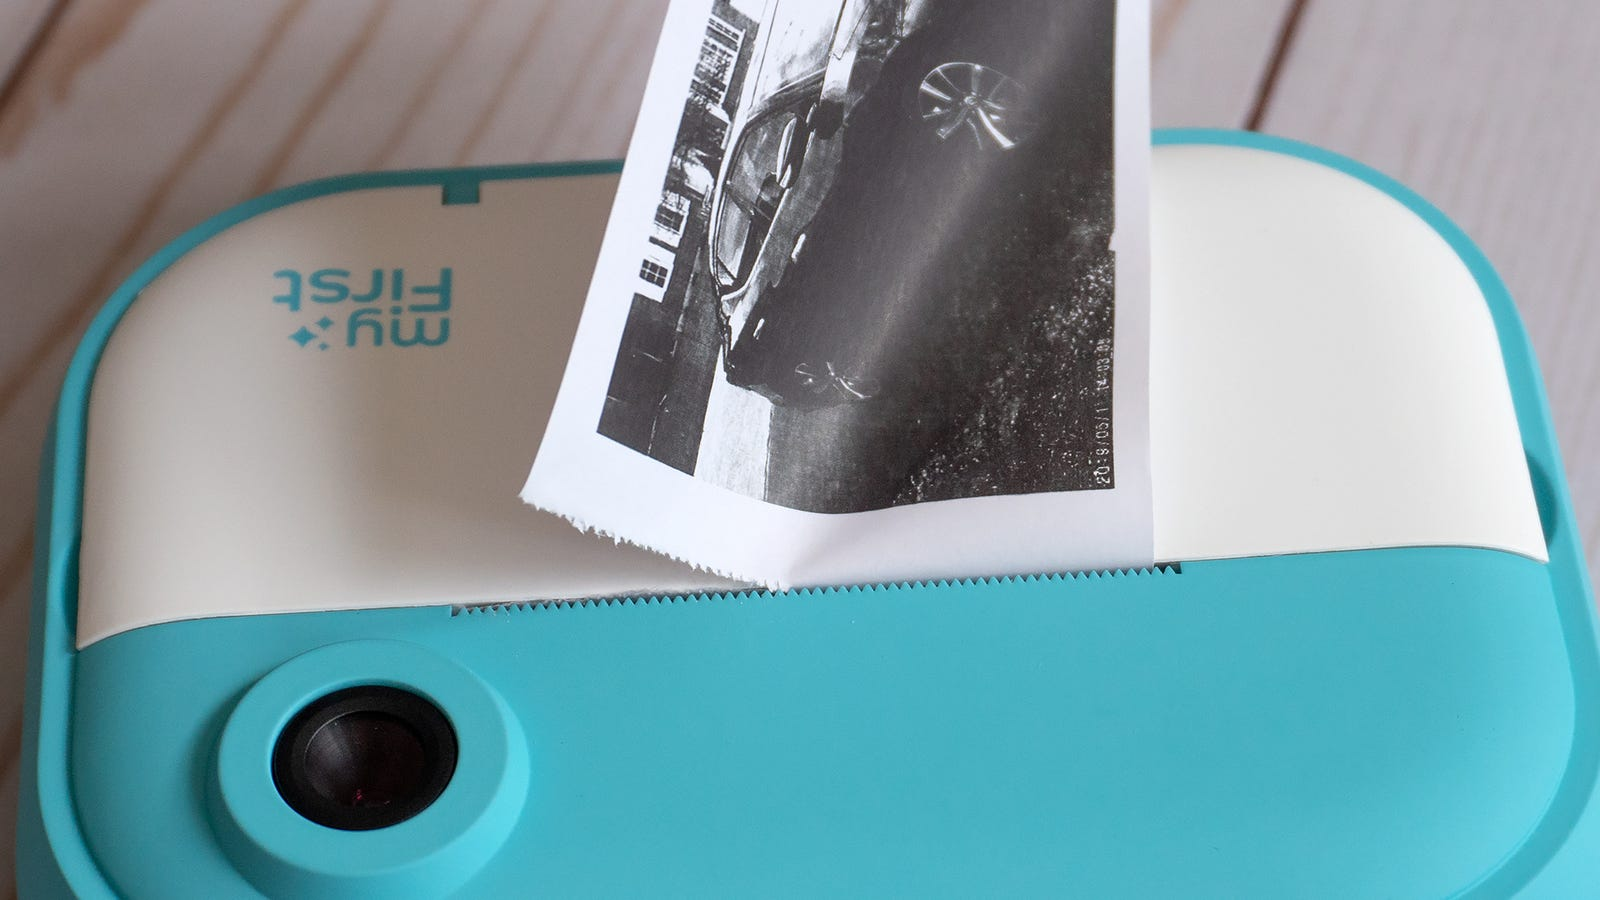 You can use a pair of scissors to separate a printed photo from the roll, but a set of serrated teeth work just as well for quickly tearing each print off.